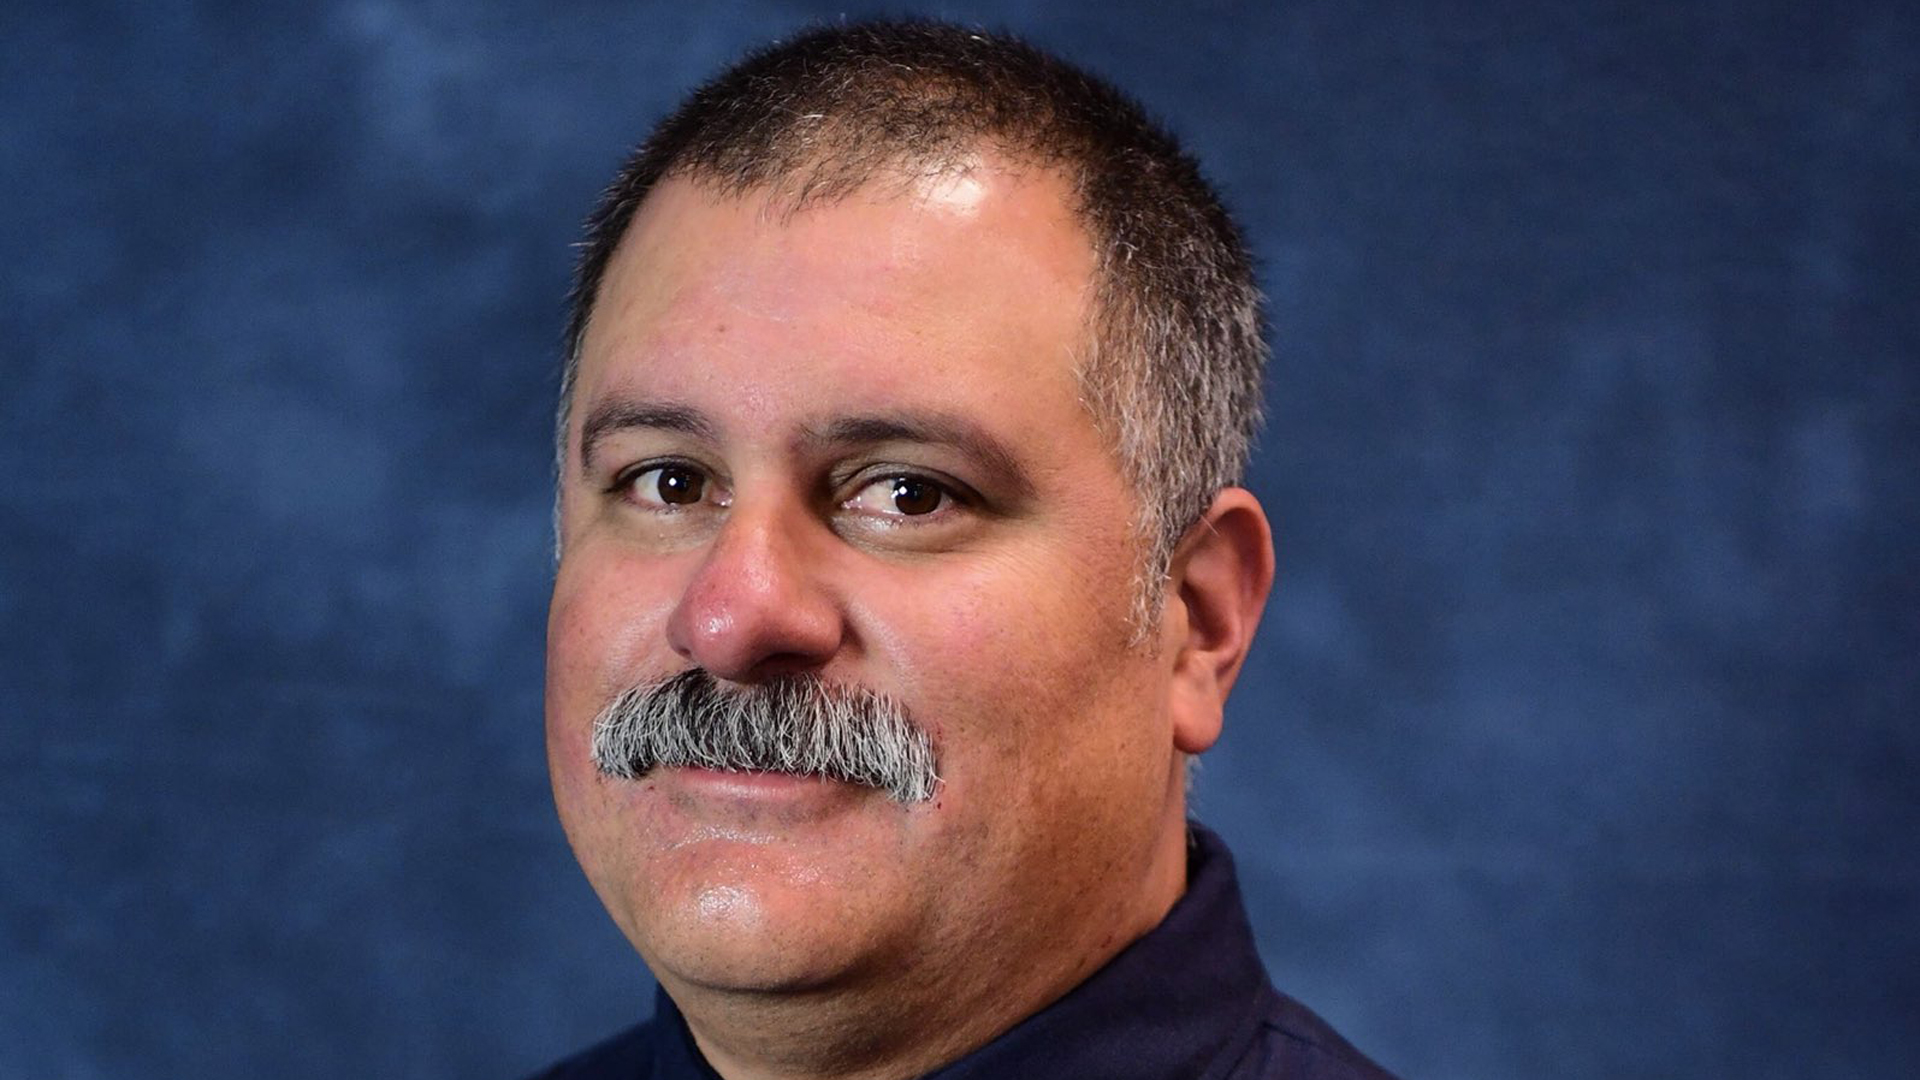 Long Beach Fire Captain Dave Rosa is seen in a photo released June 25, 2018, by the Long Beach Fire Department.